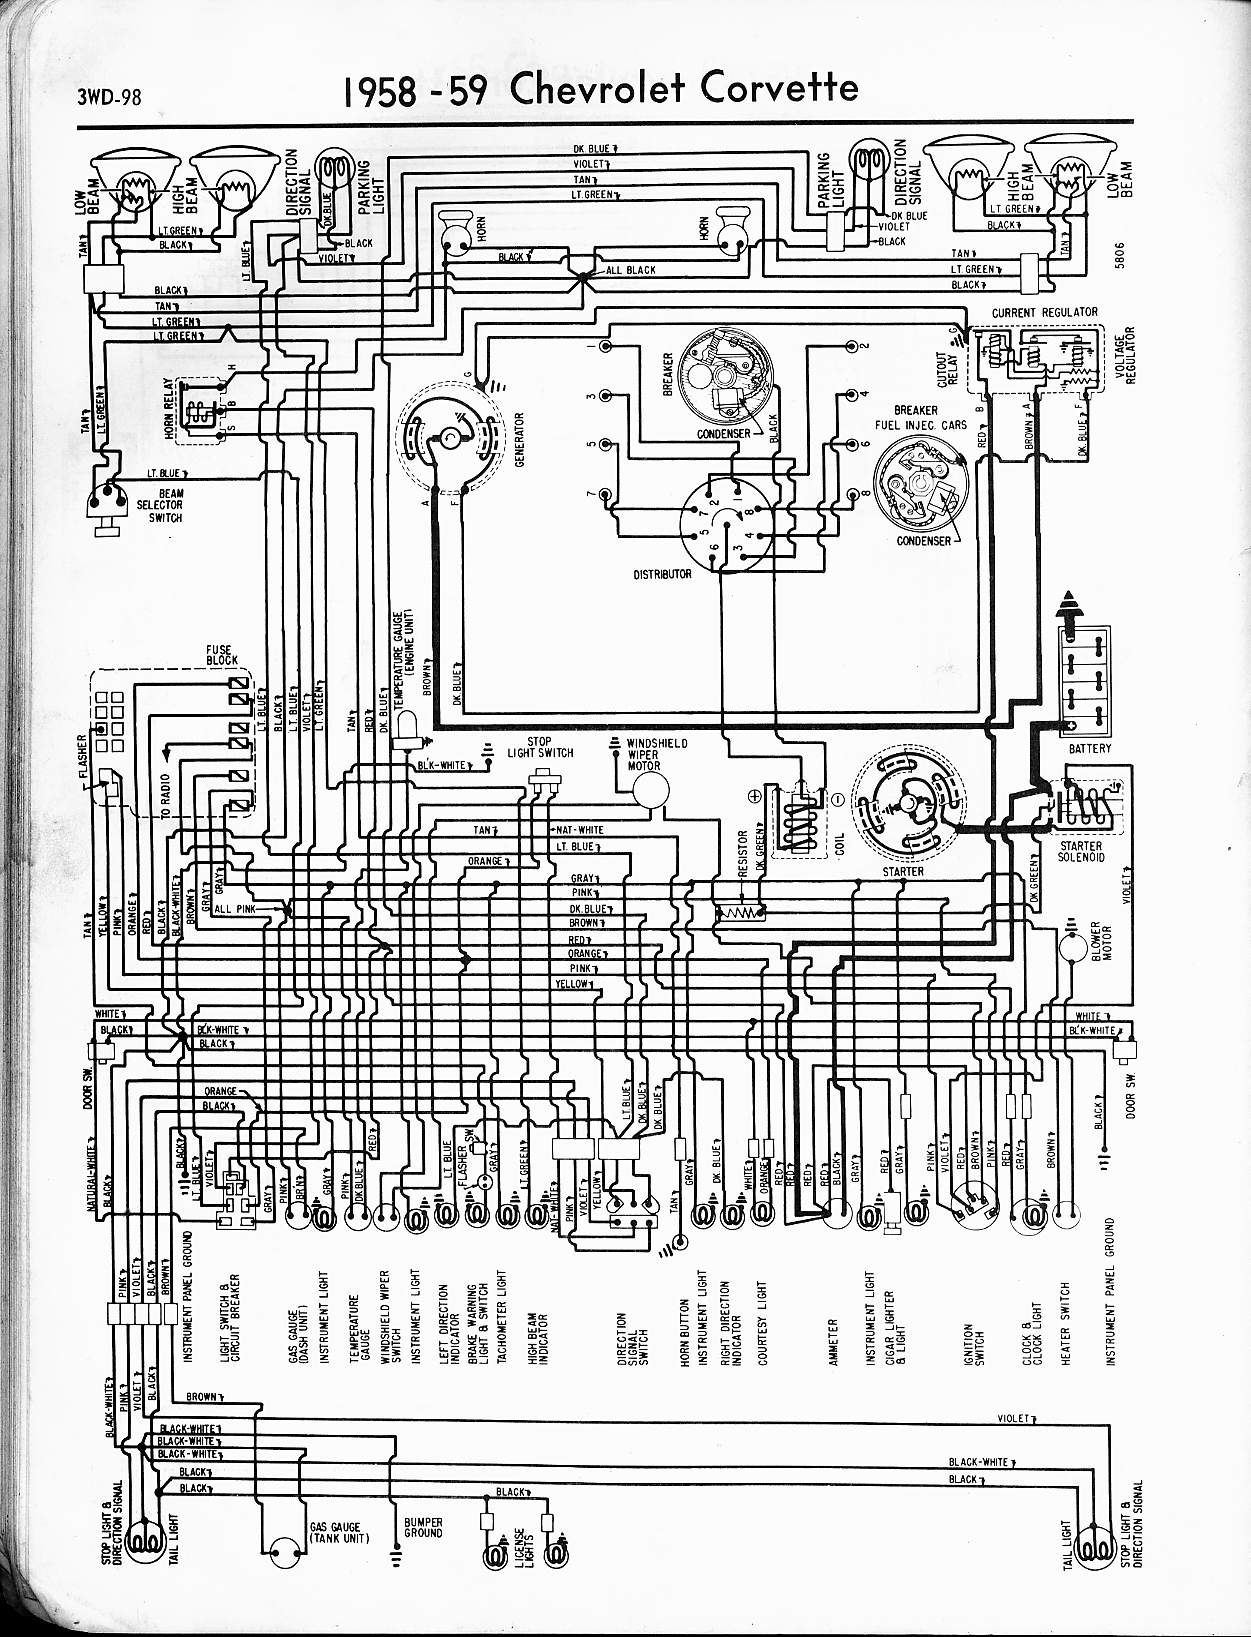 MWireChev58_3WD 098 57 65 chevy wiring diagrams 1979 corvette wiring diagram at suagrazia.org